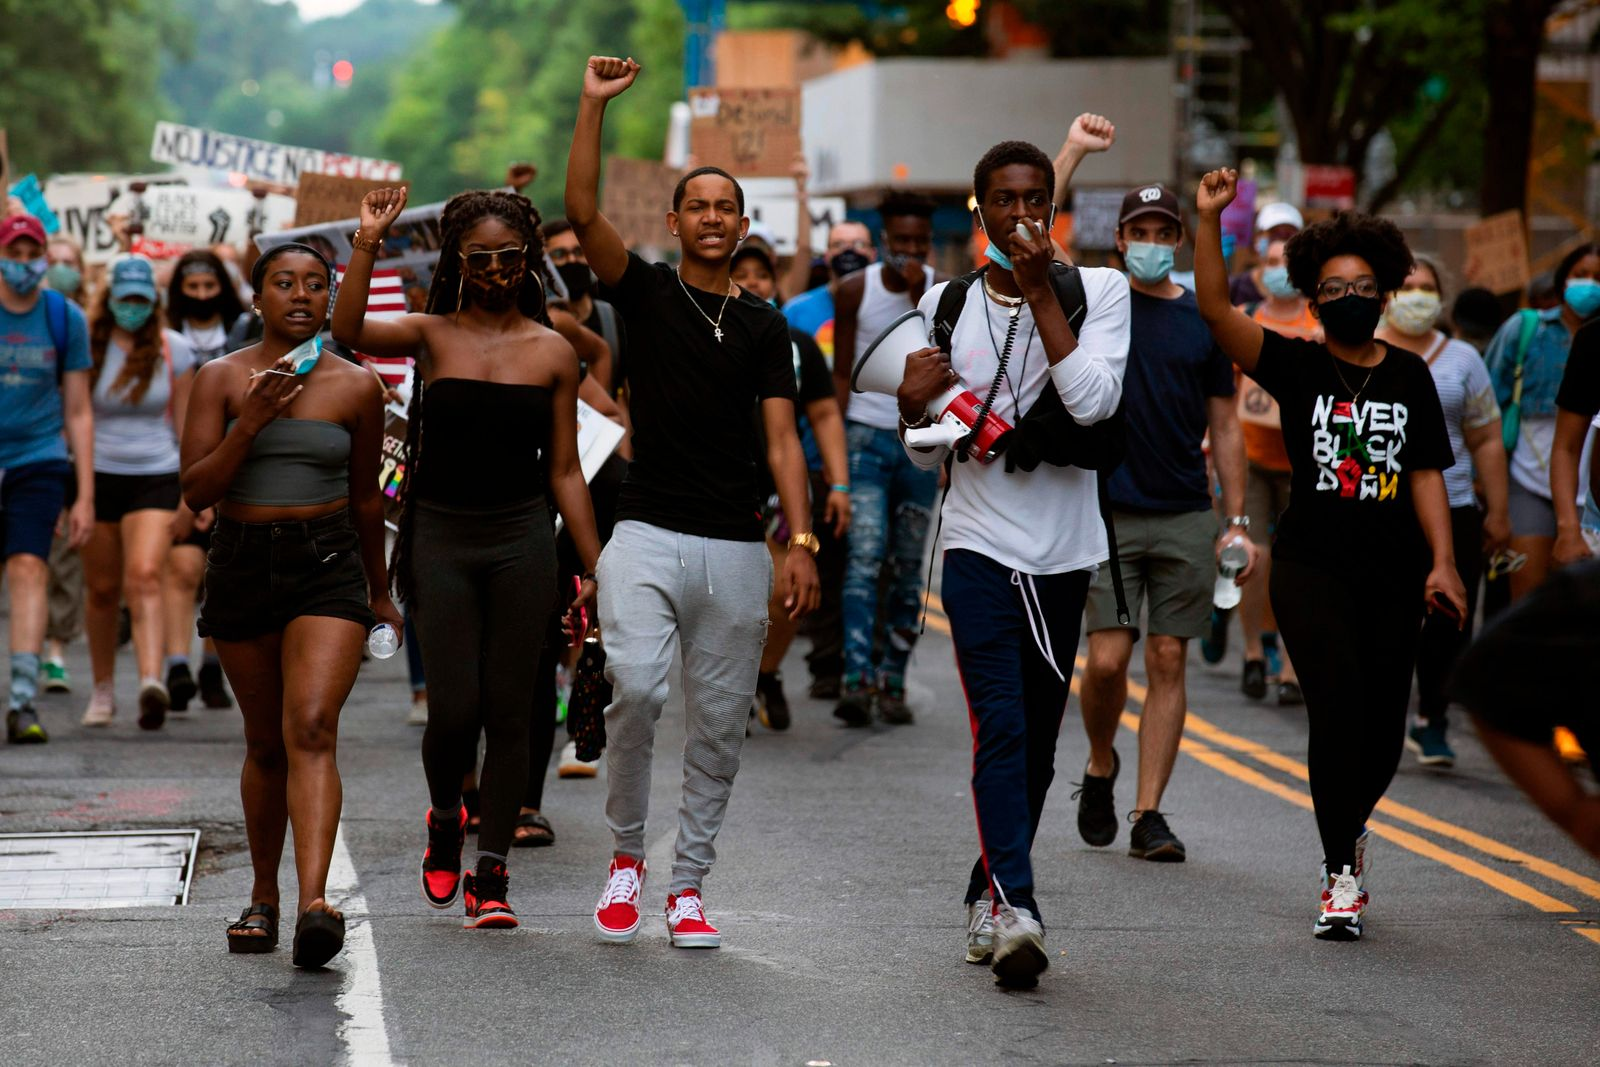 Thousands expected to attend protest against police brutality at Washington Monument